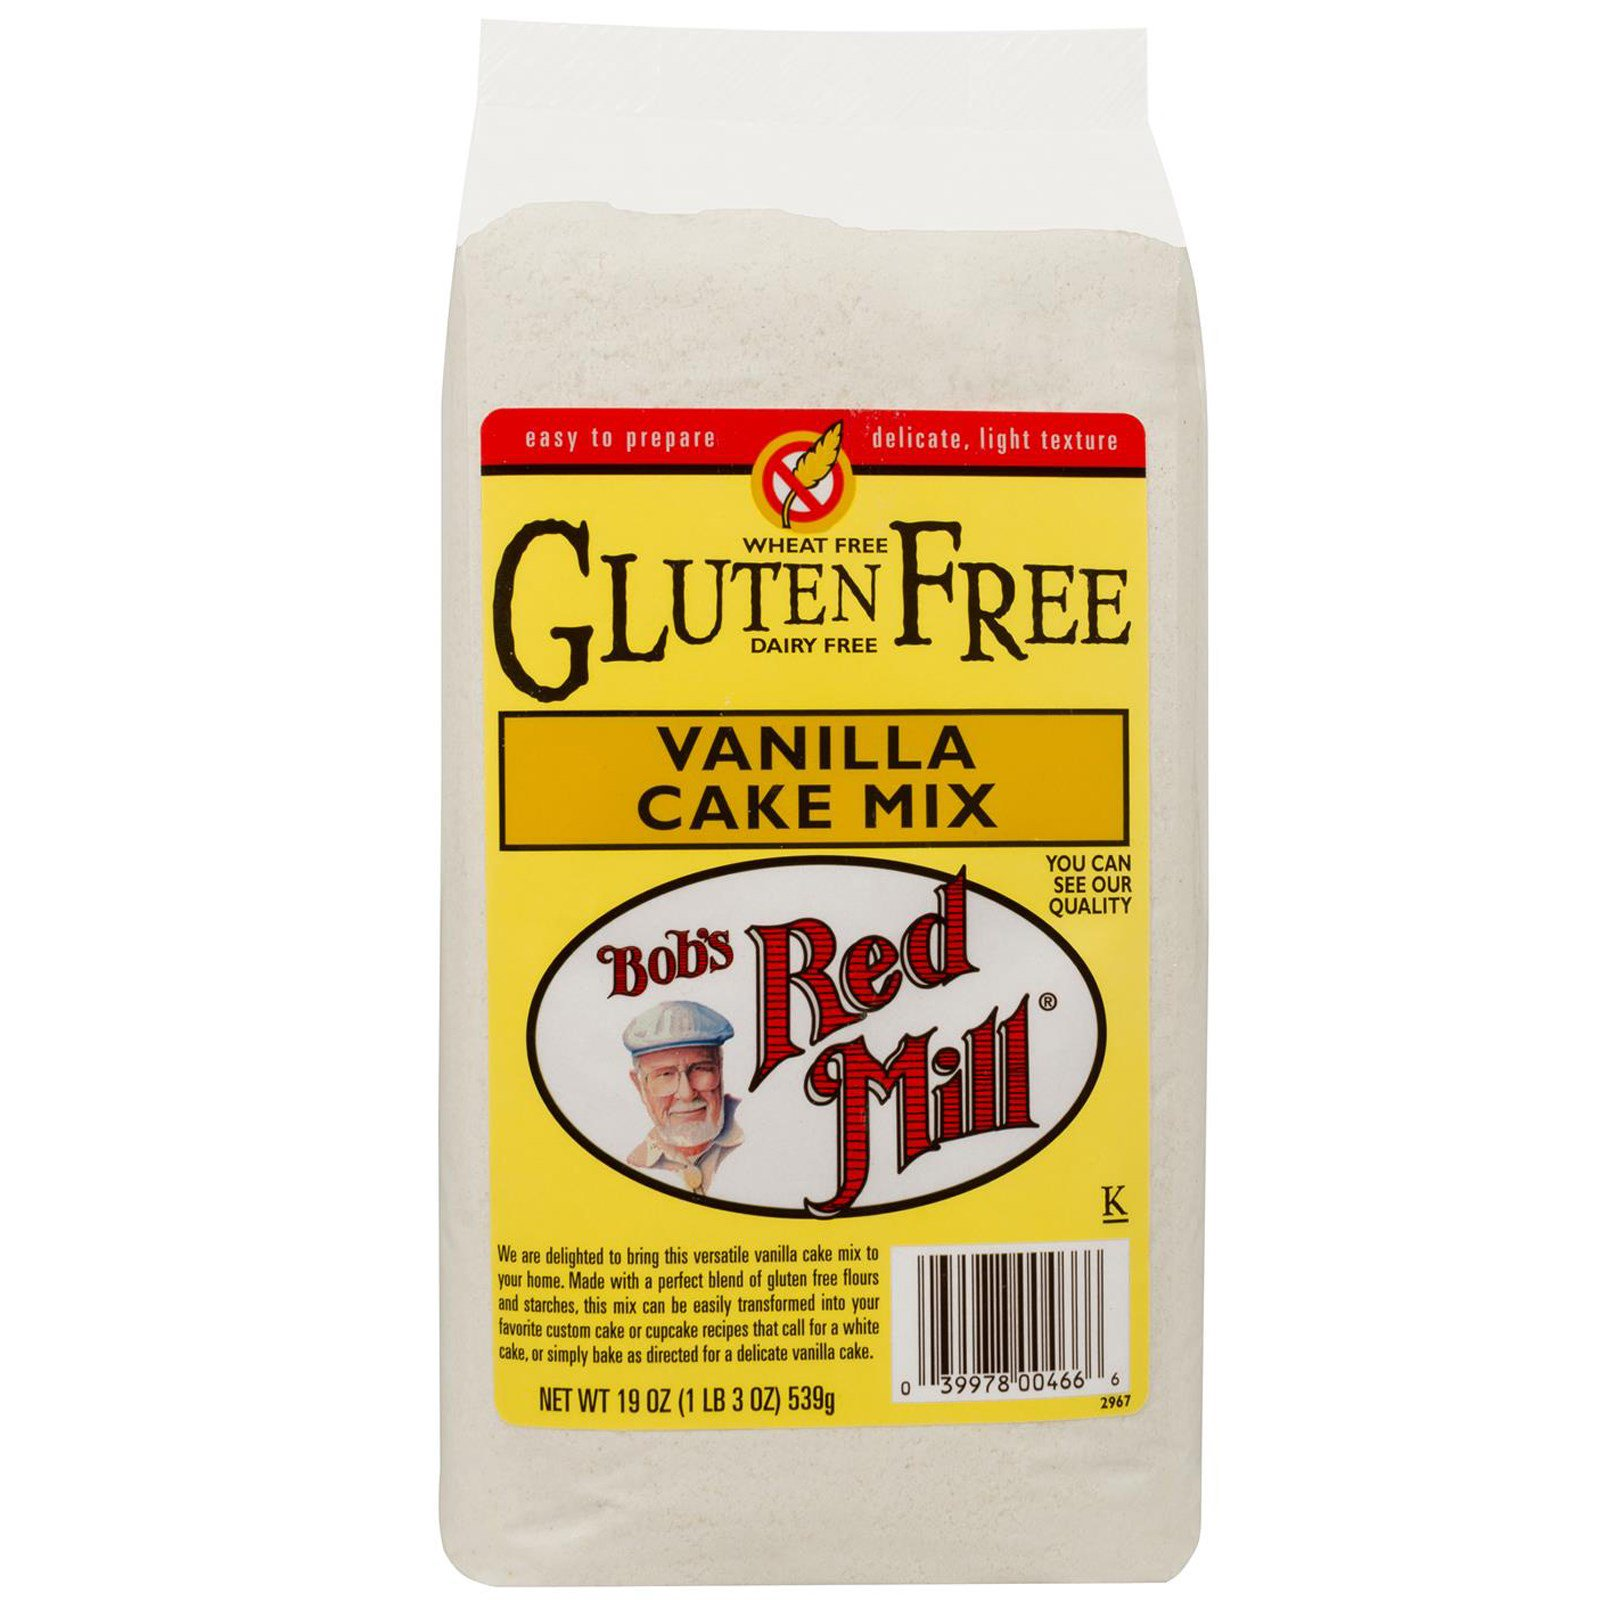 Bob's Red Mill, Gluten Free Vanilla Cake Mix, 19 oz (539 g)